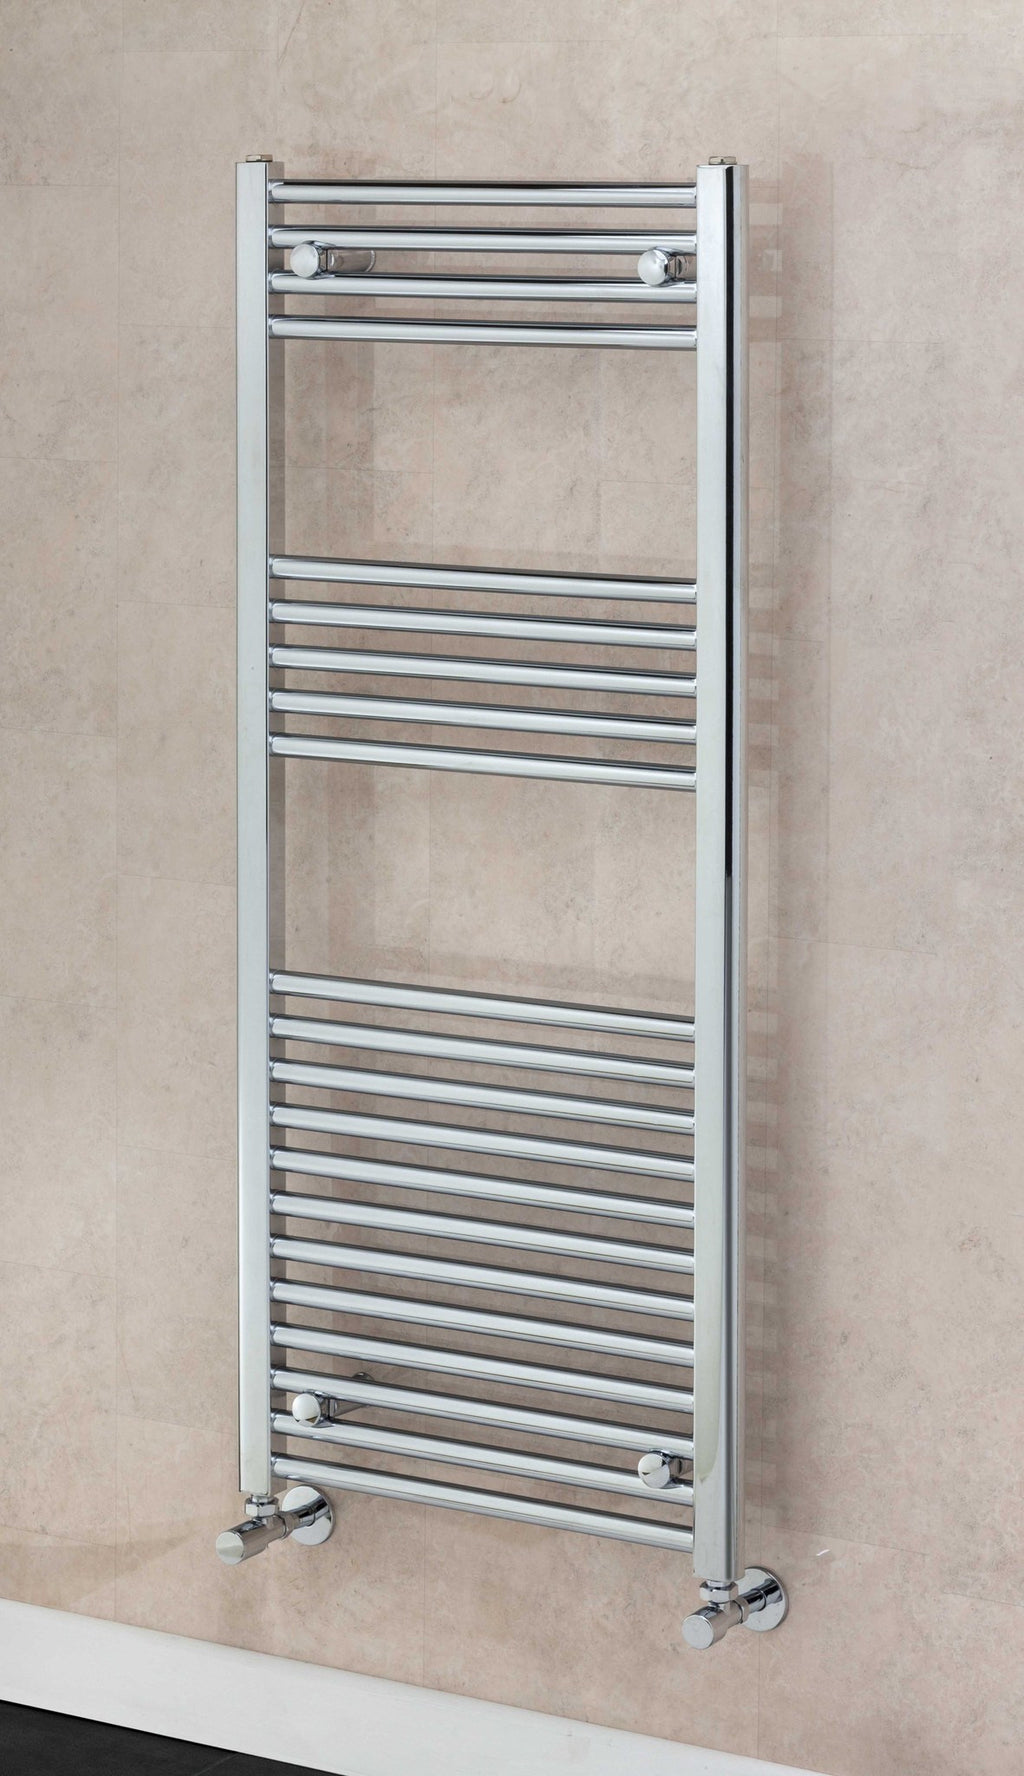 Supplies 4 Heat Argyll Straight Towel Radiator